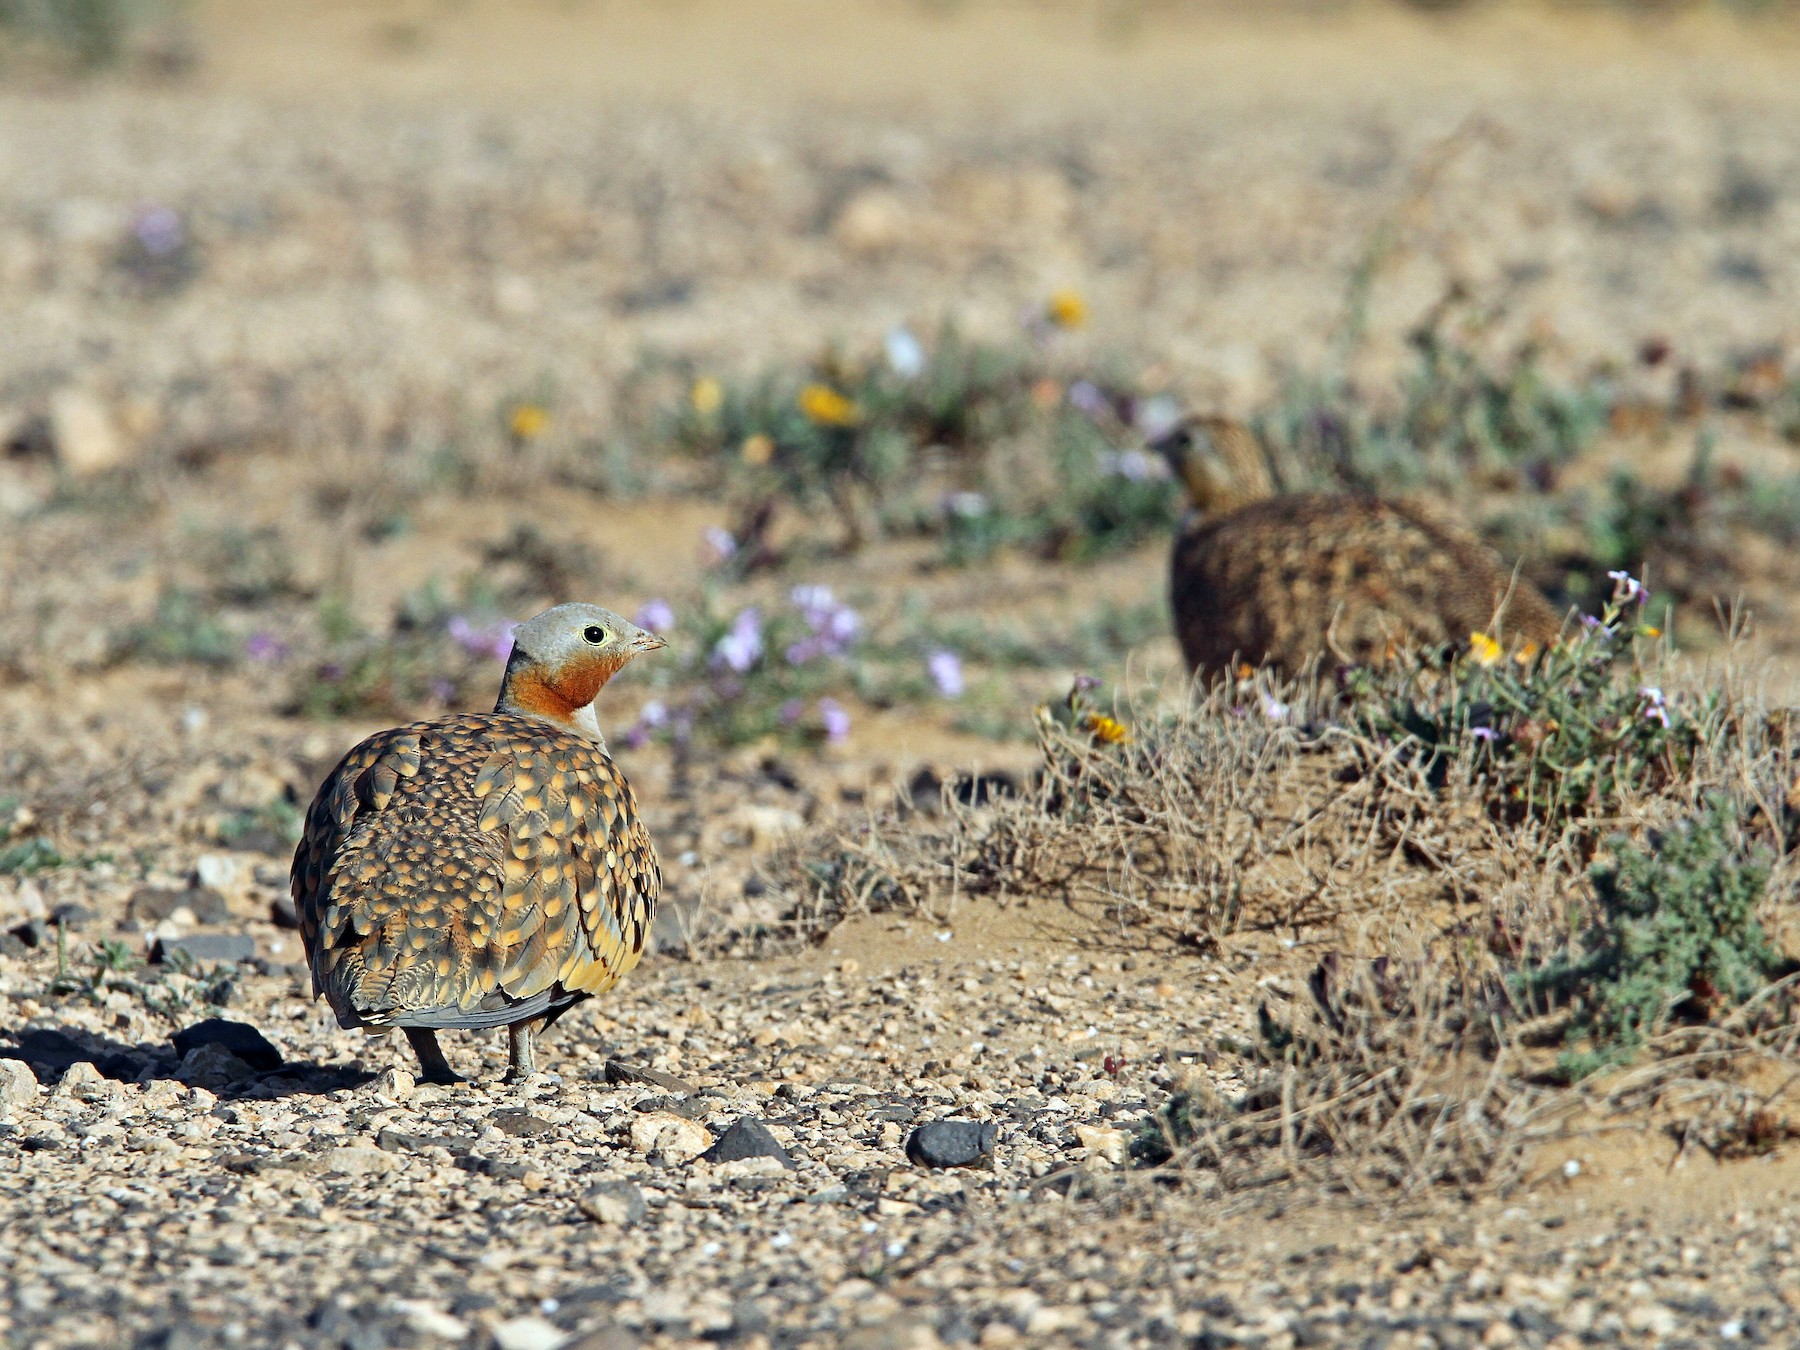 Black-bellied Sandgrouse - Christoph Moning